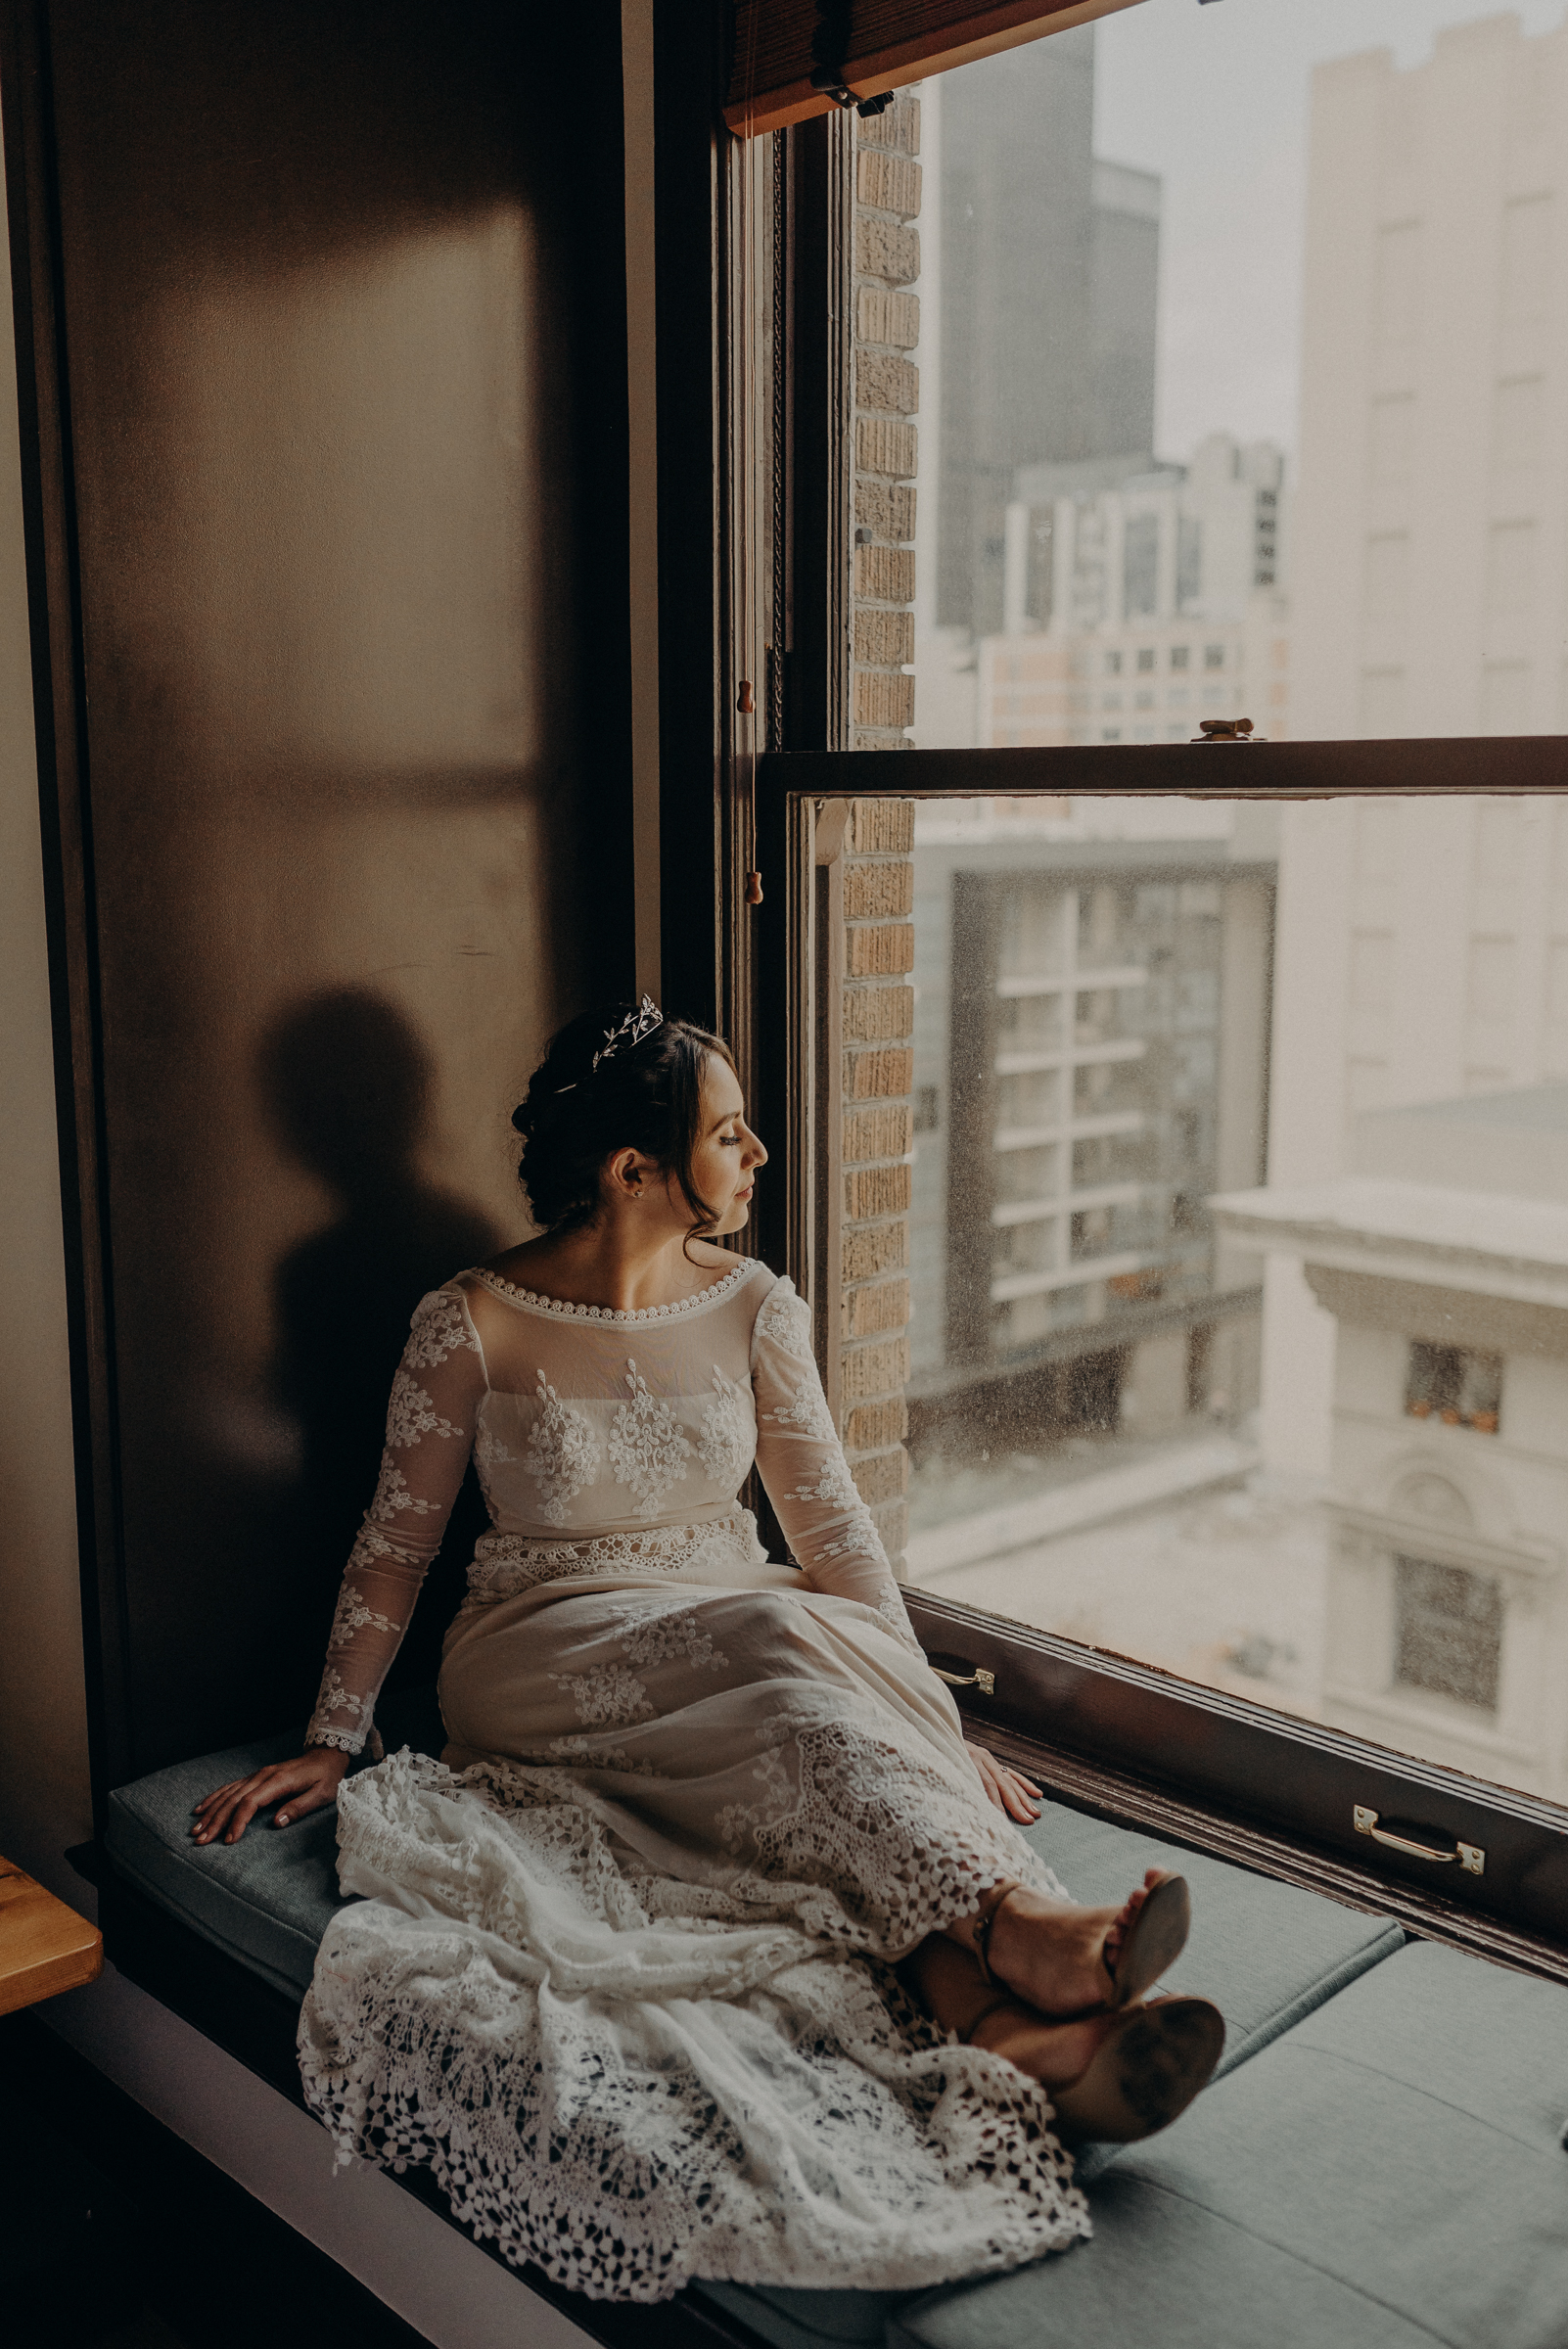 Isaiah + Taylor Photography - The Unique Space Wedding, Los Angeles Wedding Photography 017.jpg